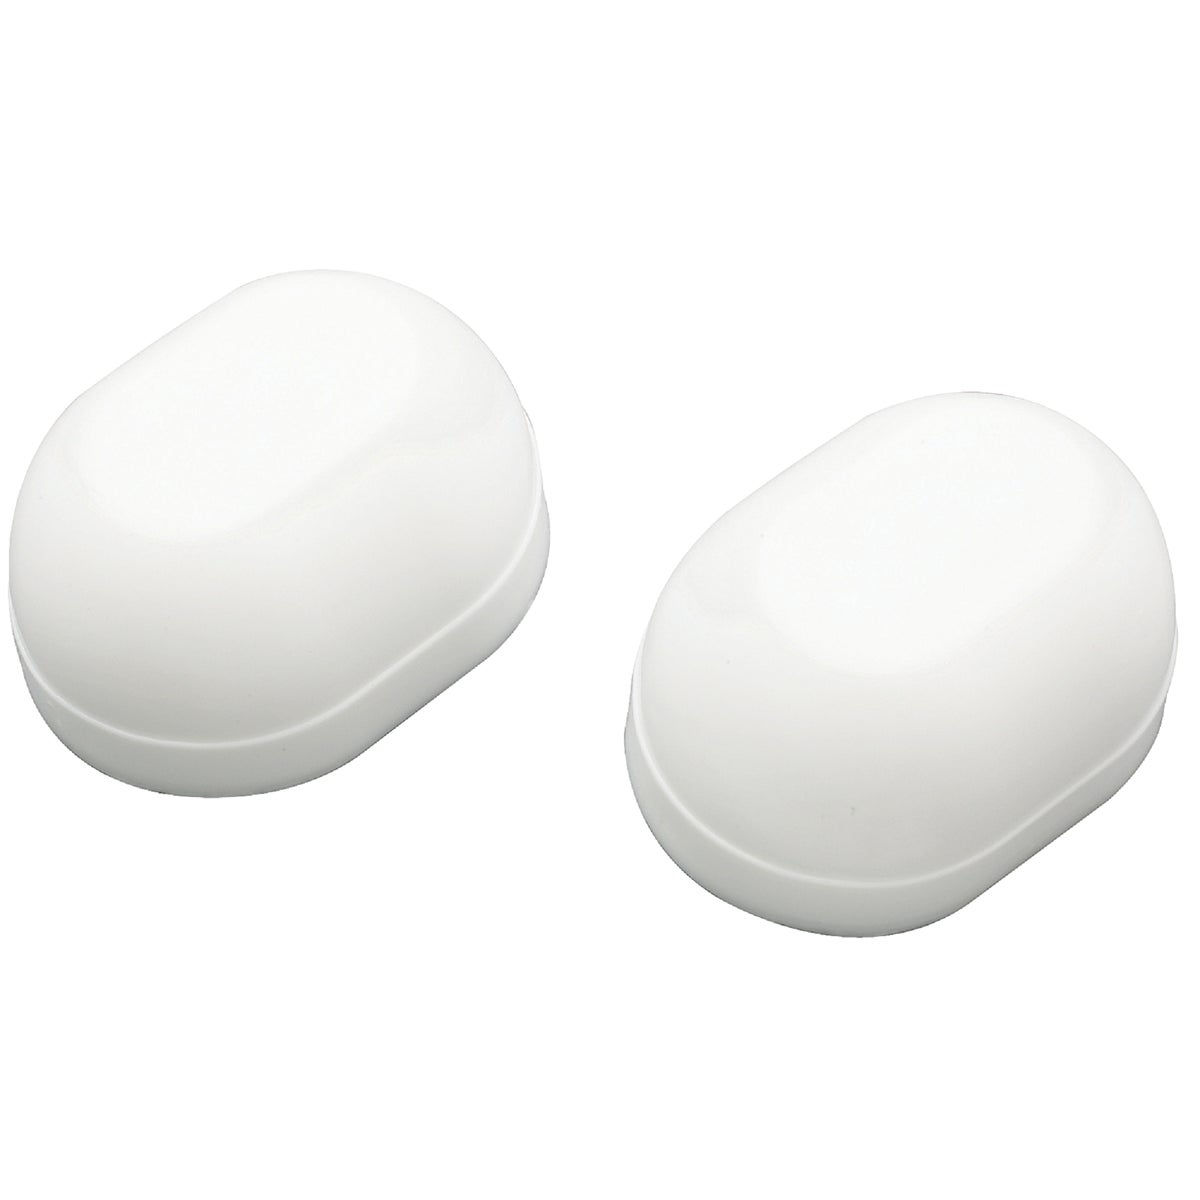 WHT OVAL TOILT BOLT CAPS